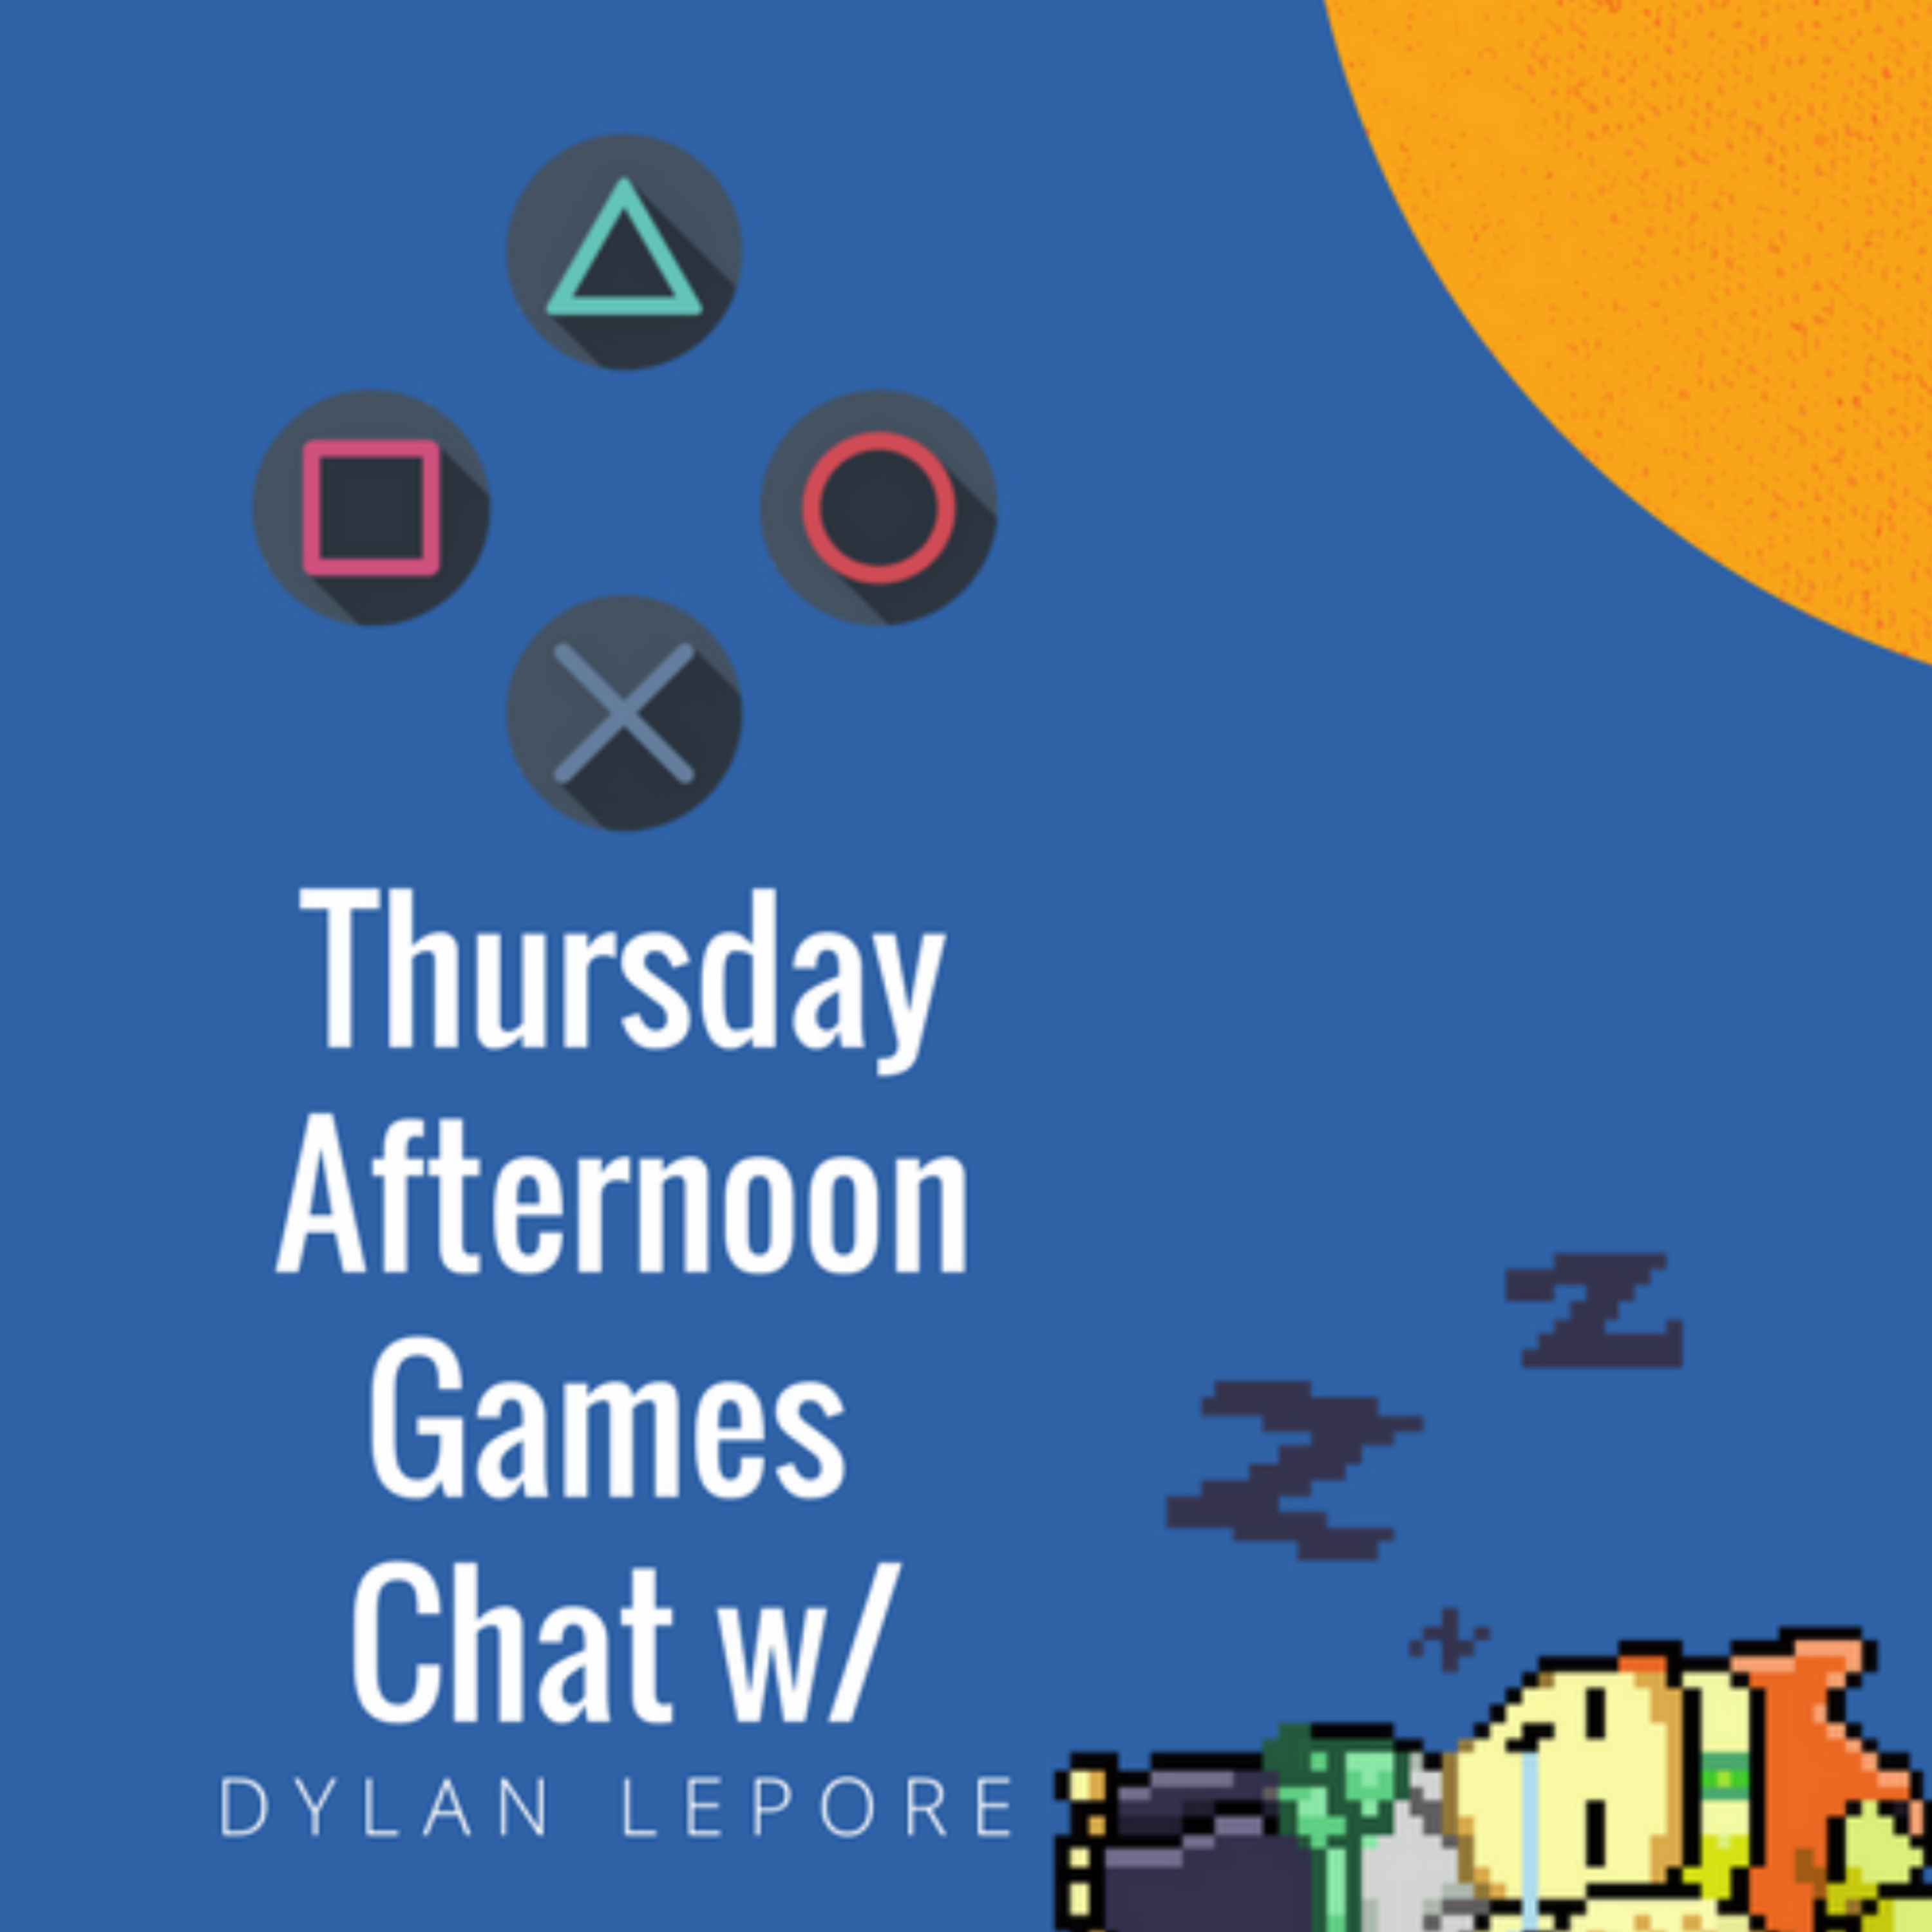 BATMAN: ARKHAM ORIGINS | the Thursday Afternoon Games Chat W/ Dylan Lepore Ep. 5